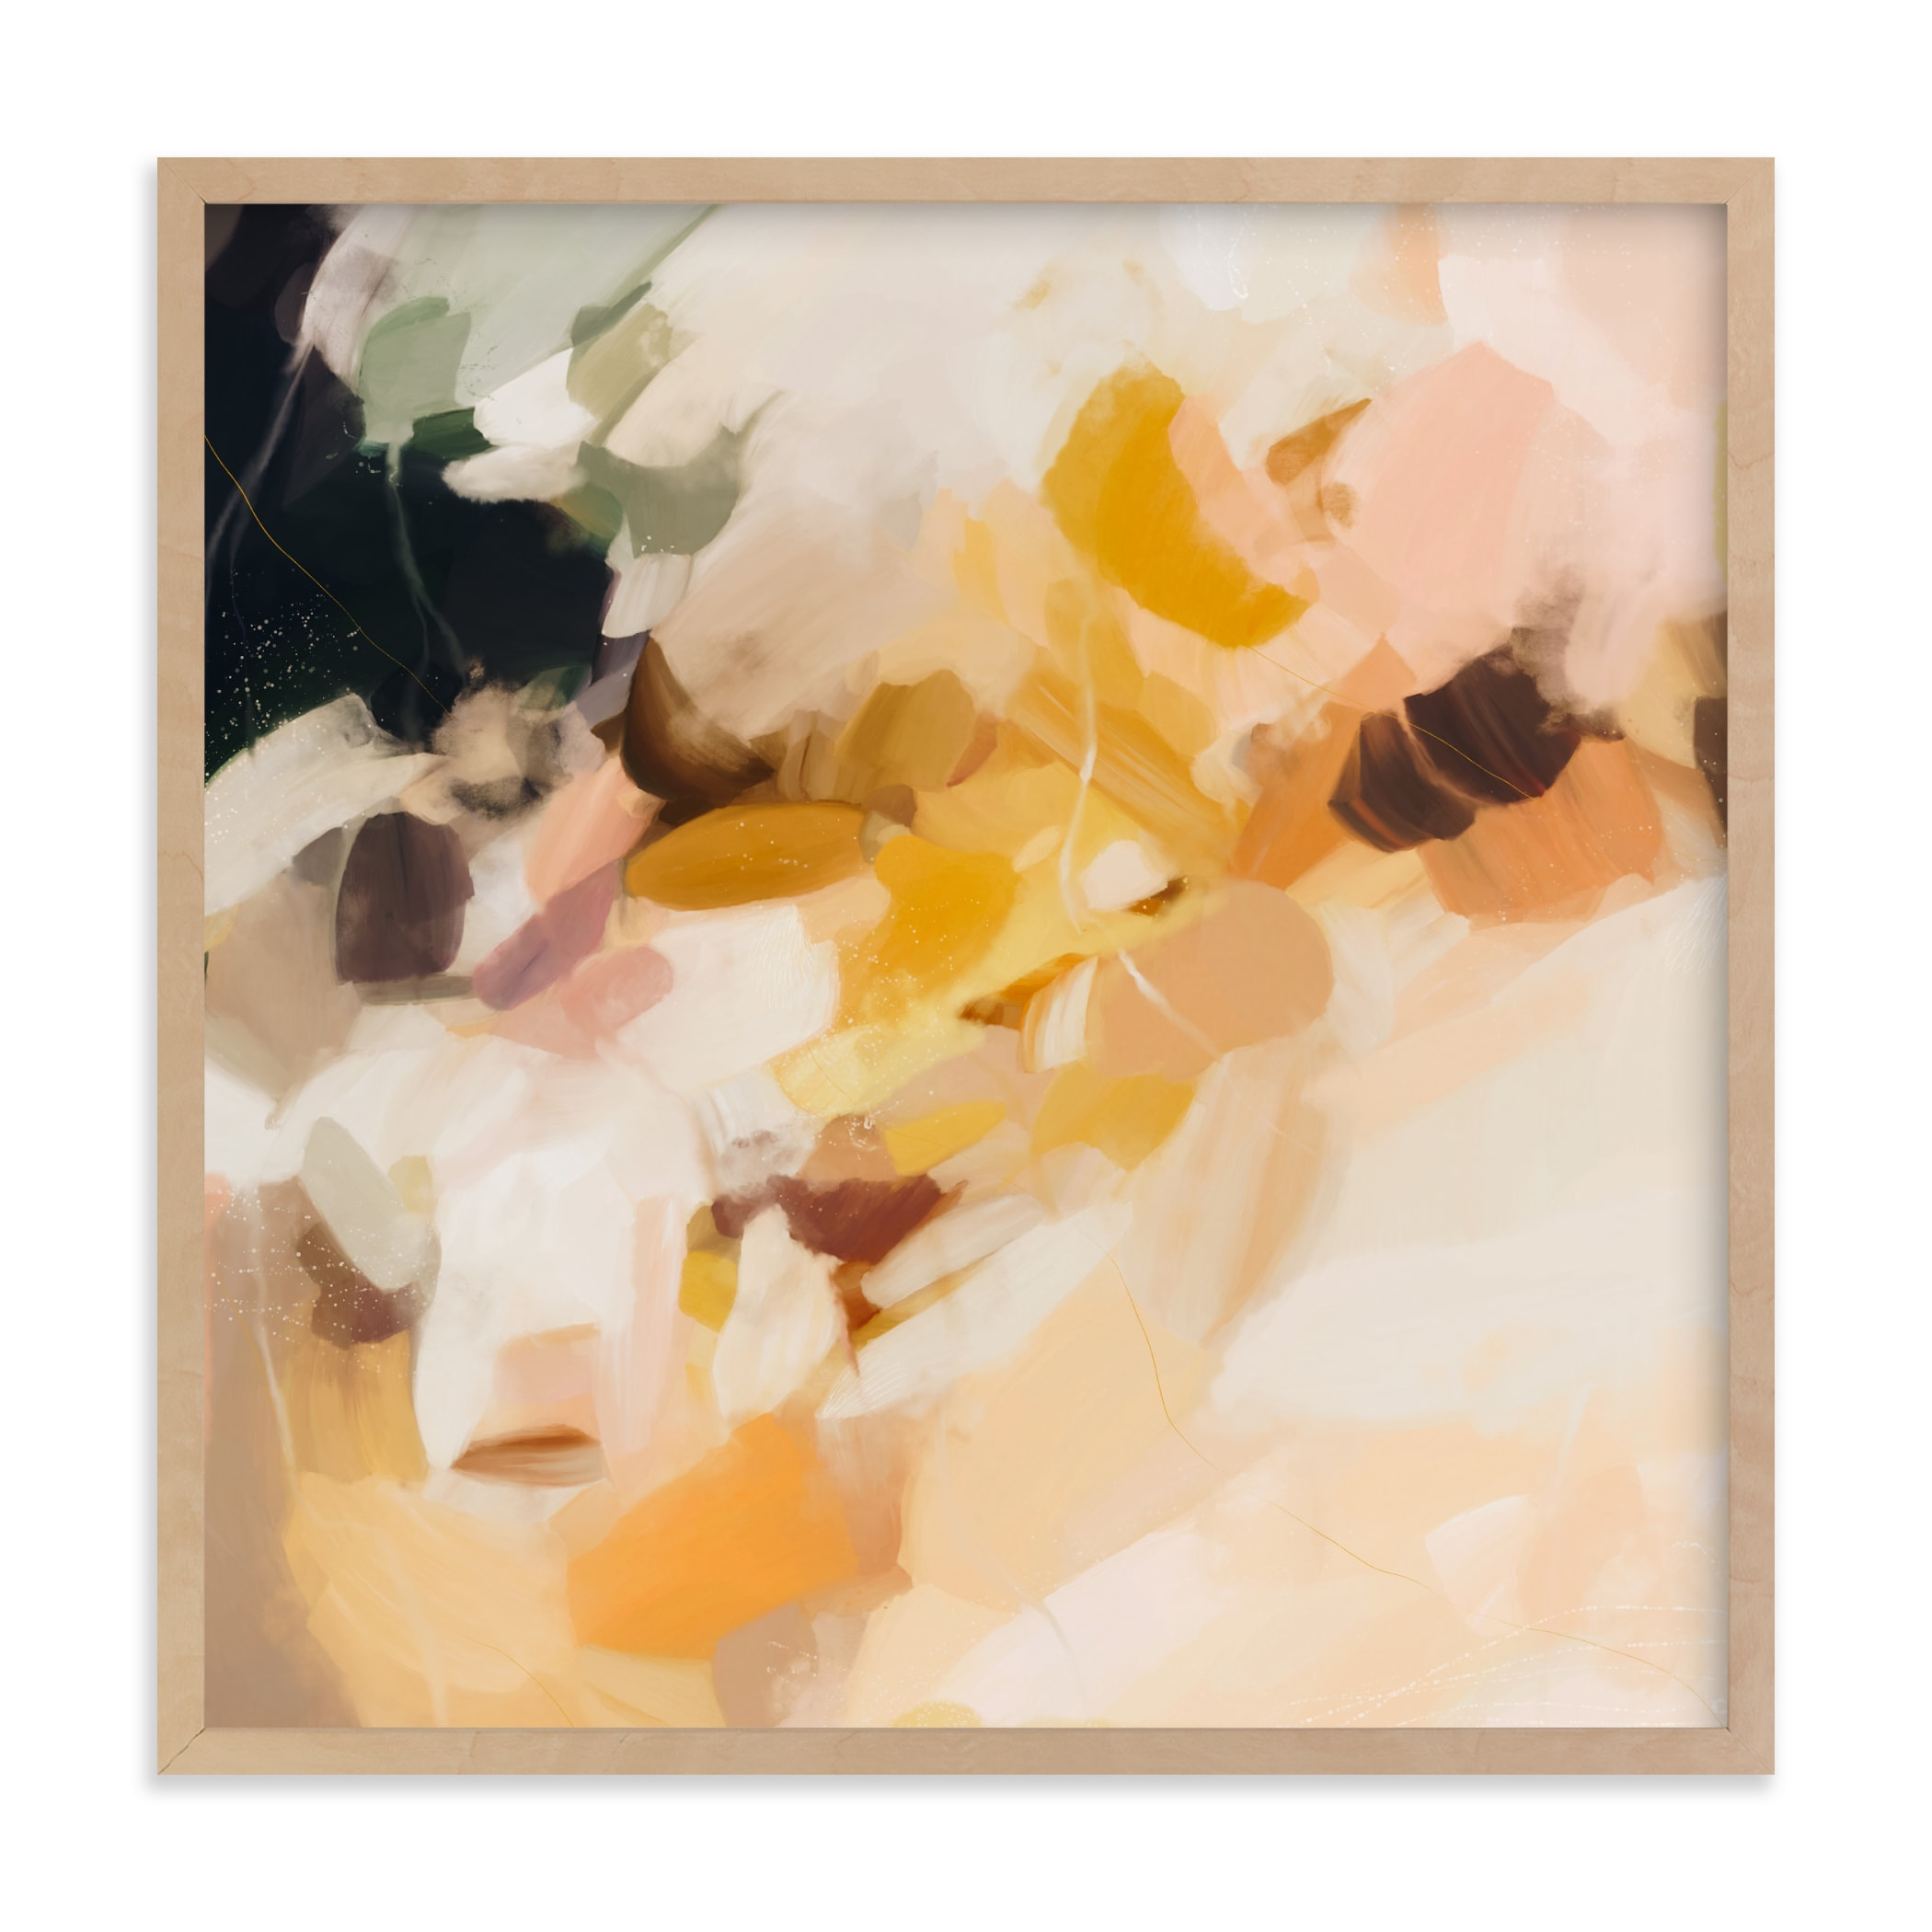 This is a yellow art by Parima Studio called Emberley.